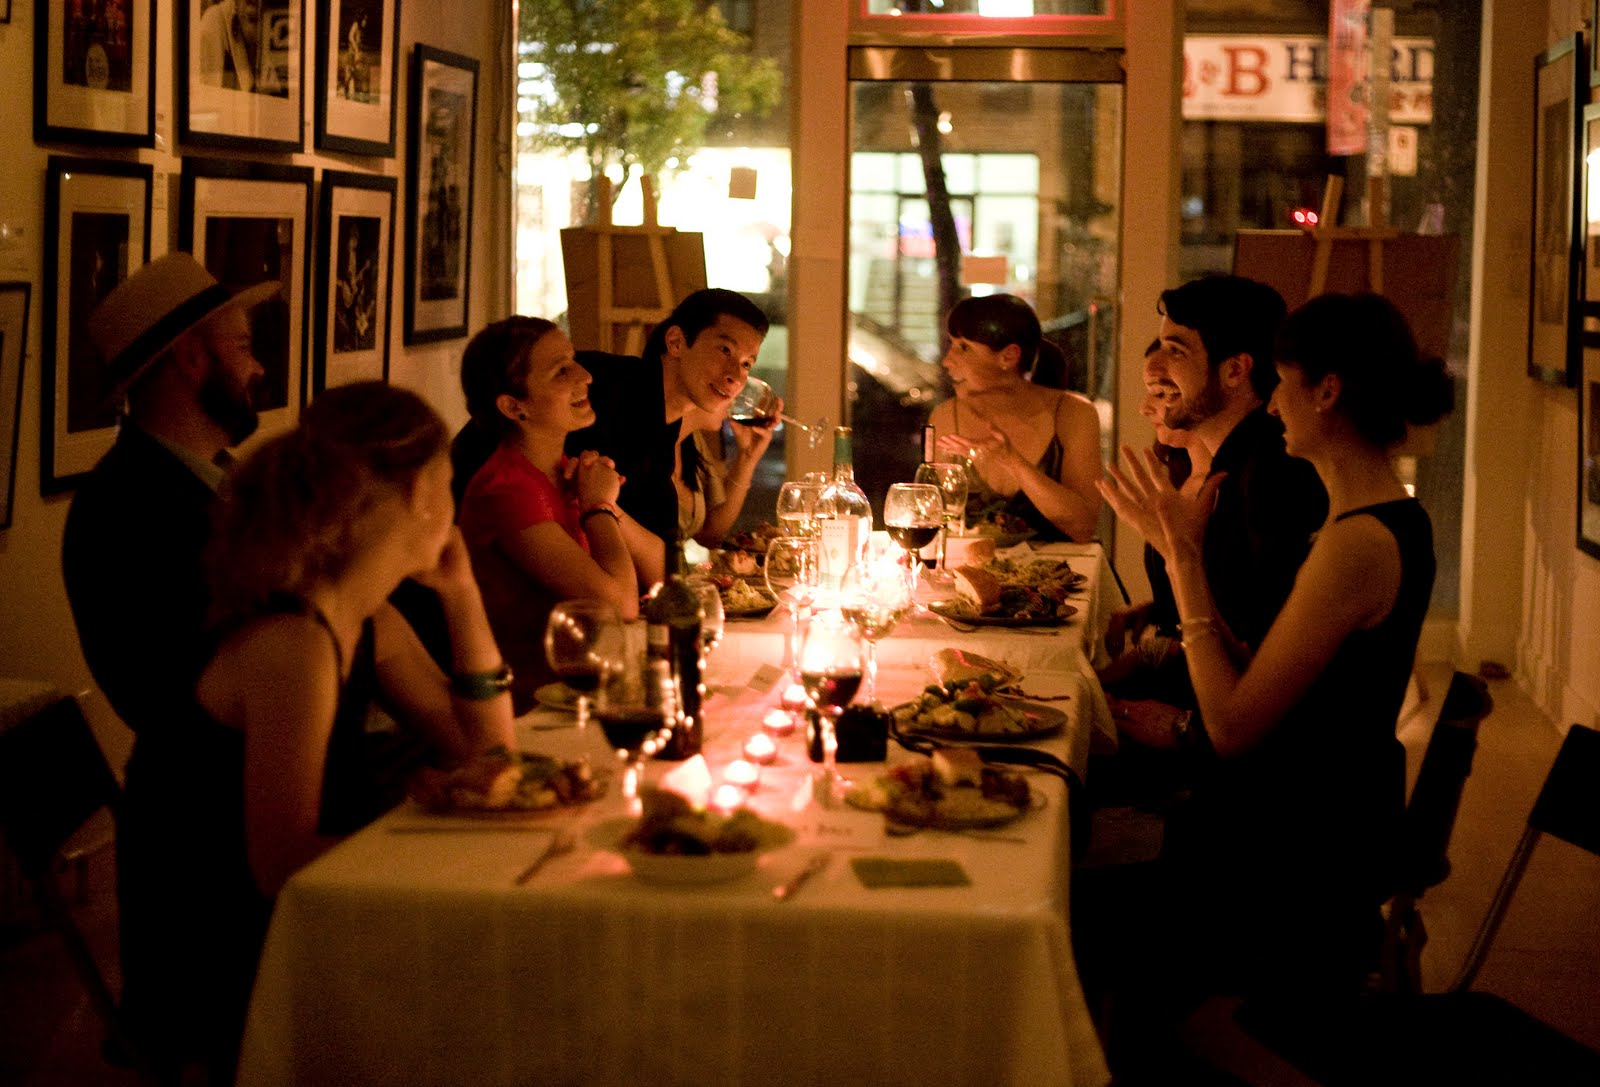 Dinner Party at your Favorite Restaurant (childrensnational.org)